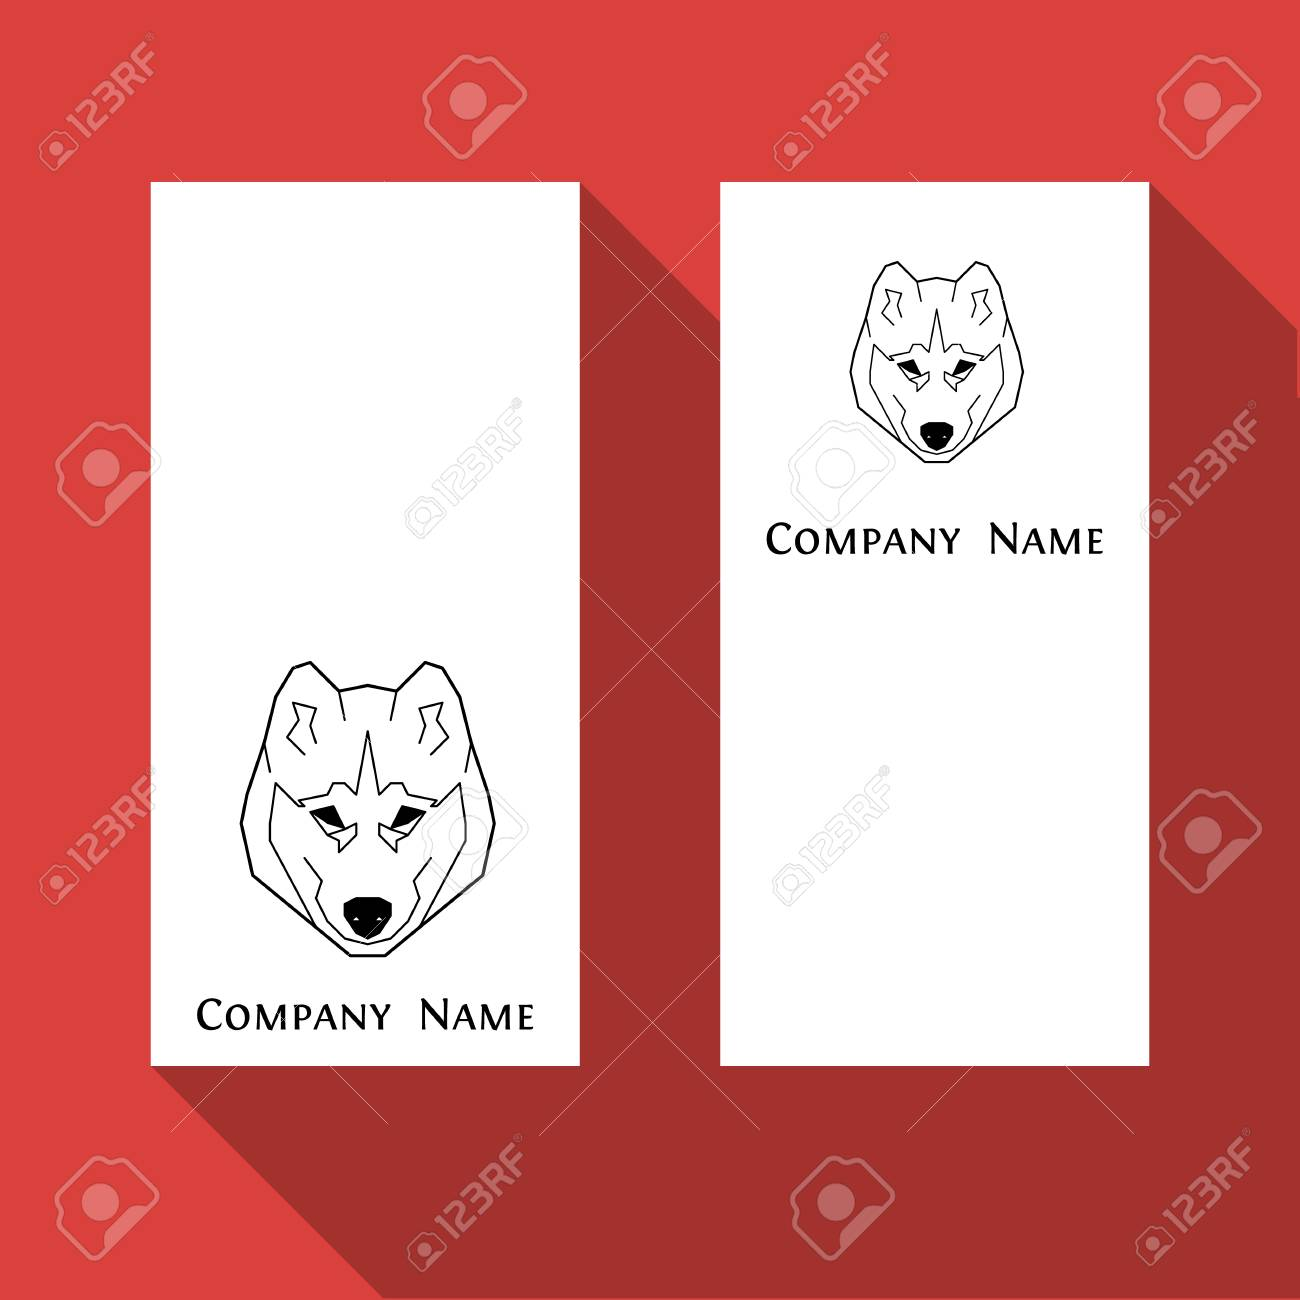 Husky Dog Business Card In Geometric Modern Style. Royalty Free ...